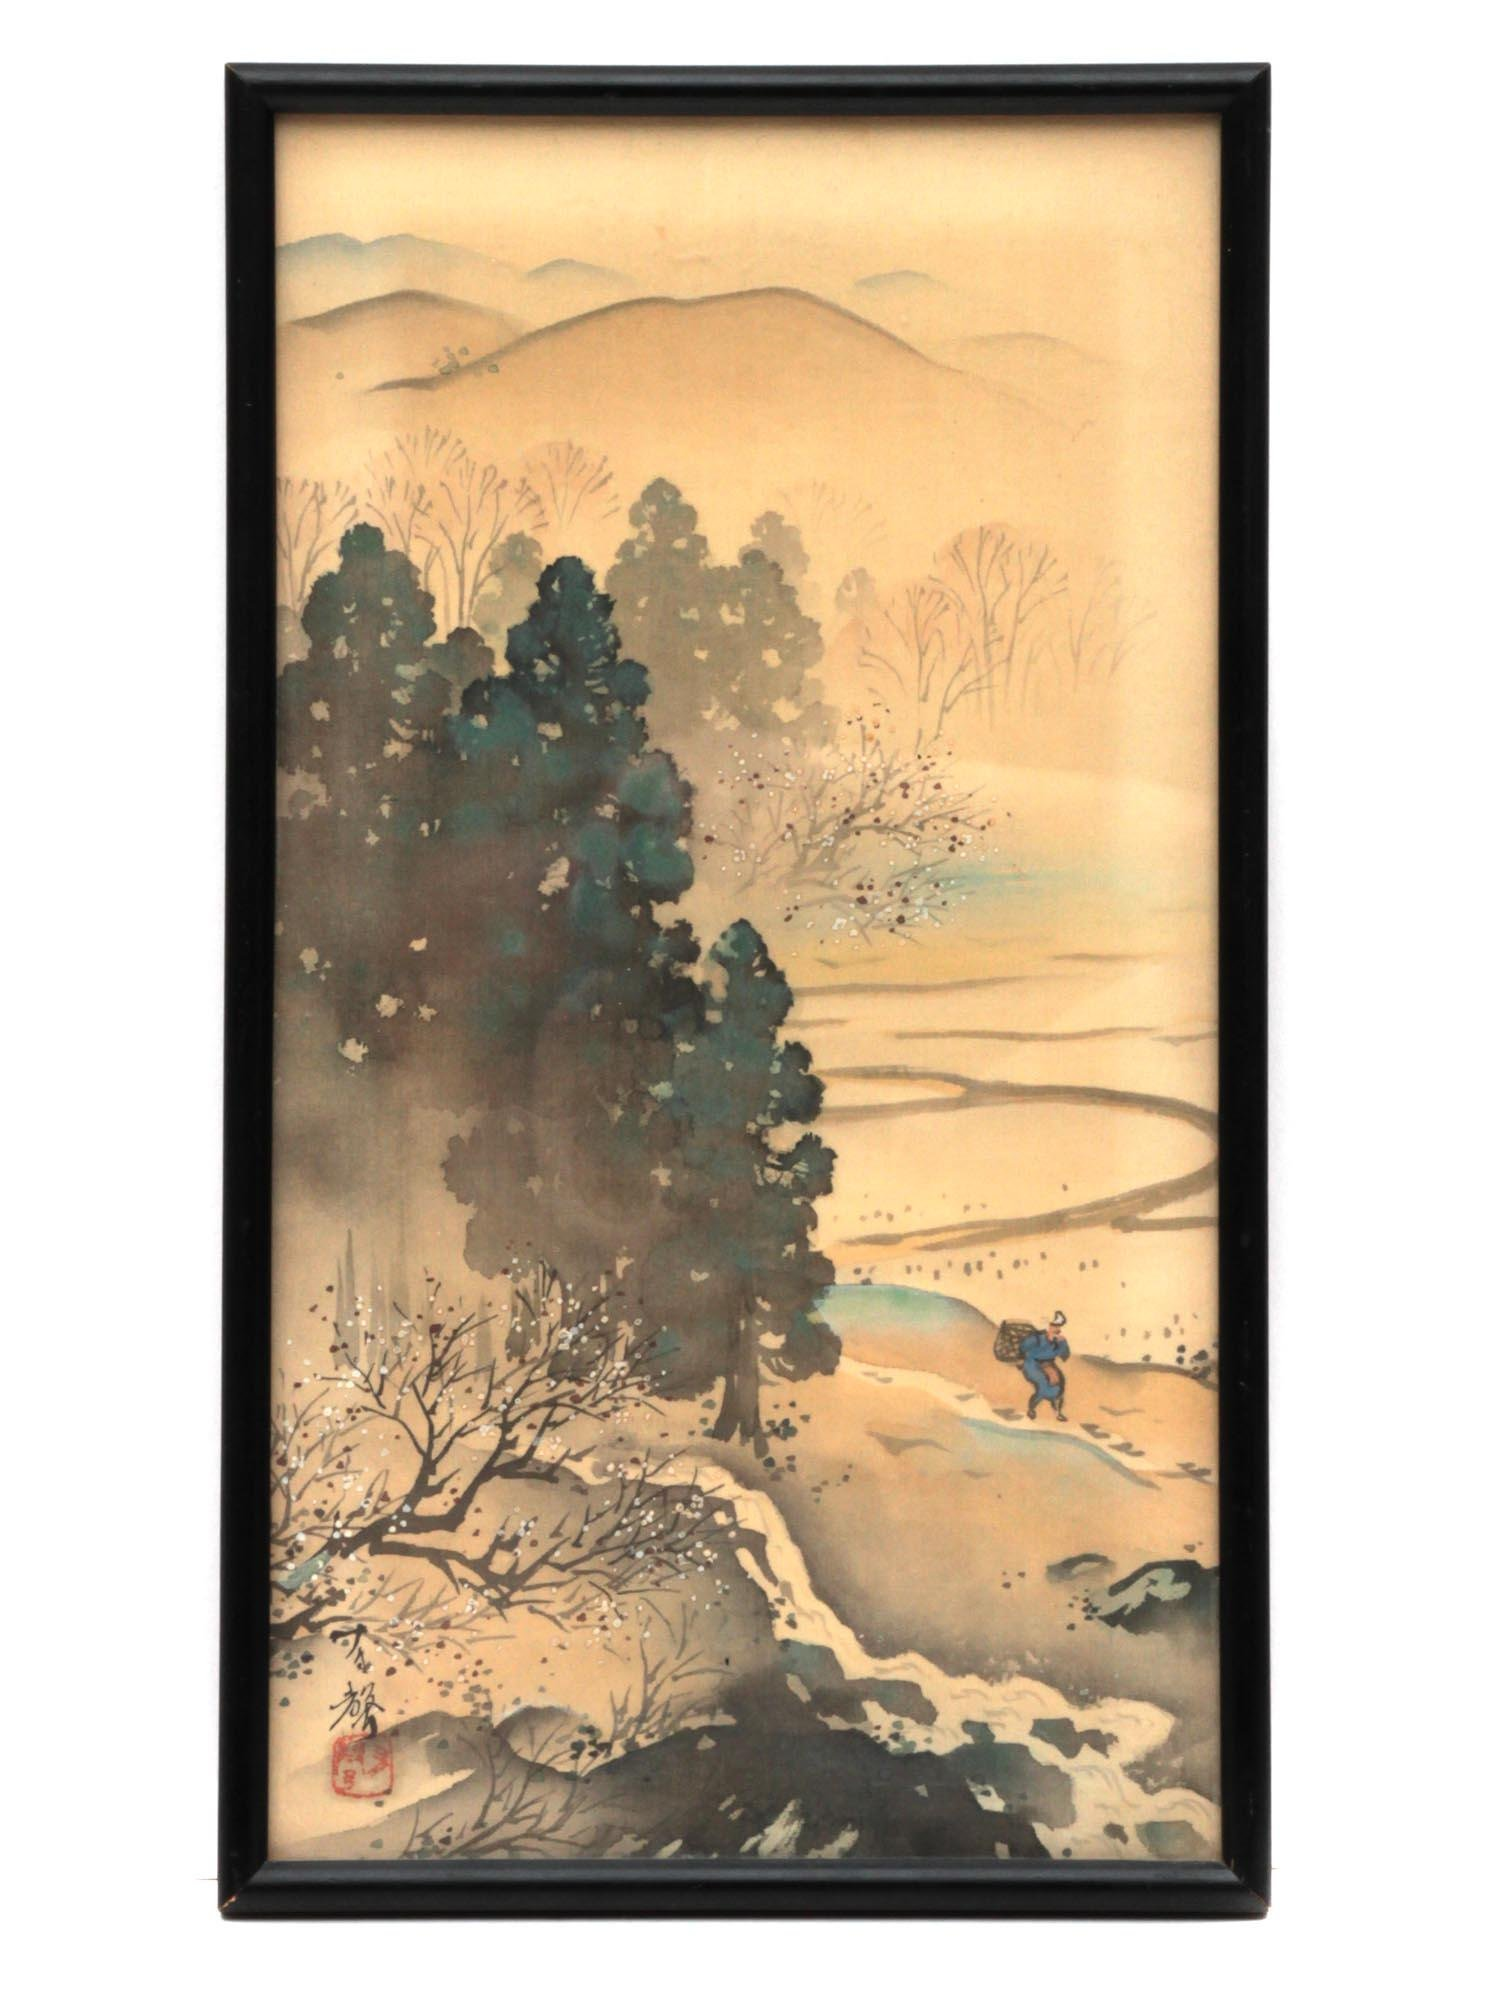 AN ORIGINAL VINTAGE JAPANESE MOUNTAIN LANDSCAPE